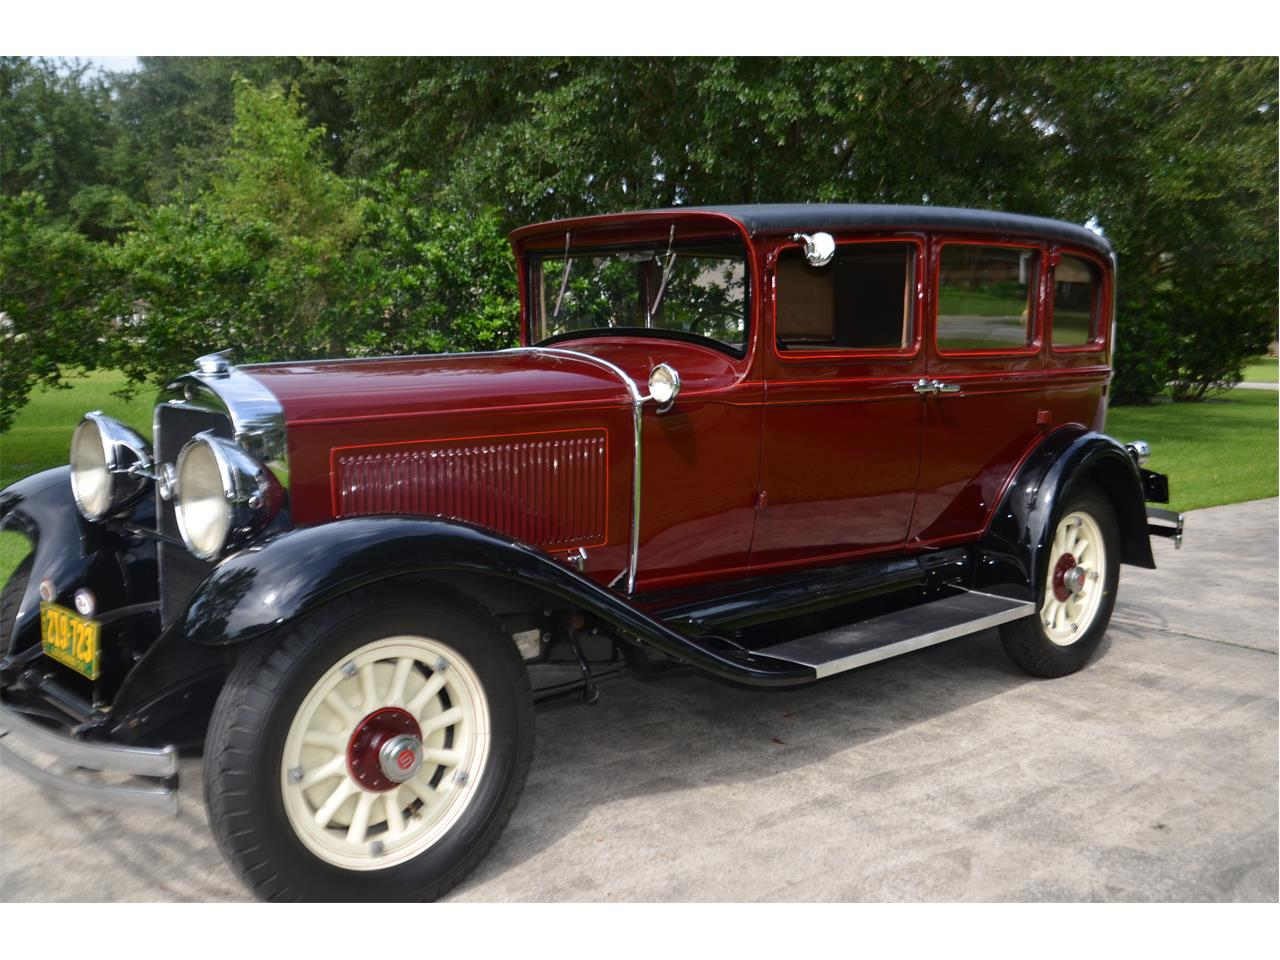 Large Picture of Classic 1930 Studebaker President located in Louisiana - $32,500.00 Offered by a Private Seller - K4KJ